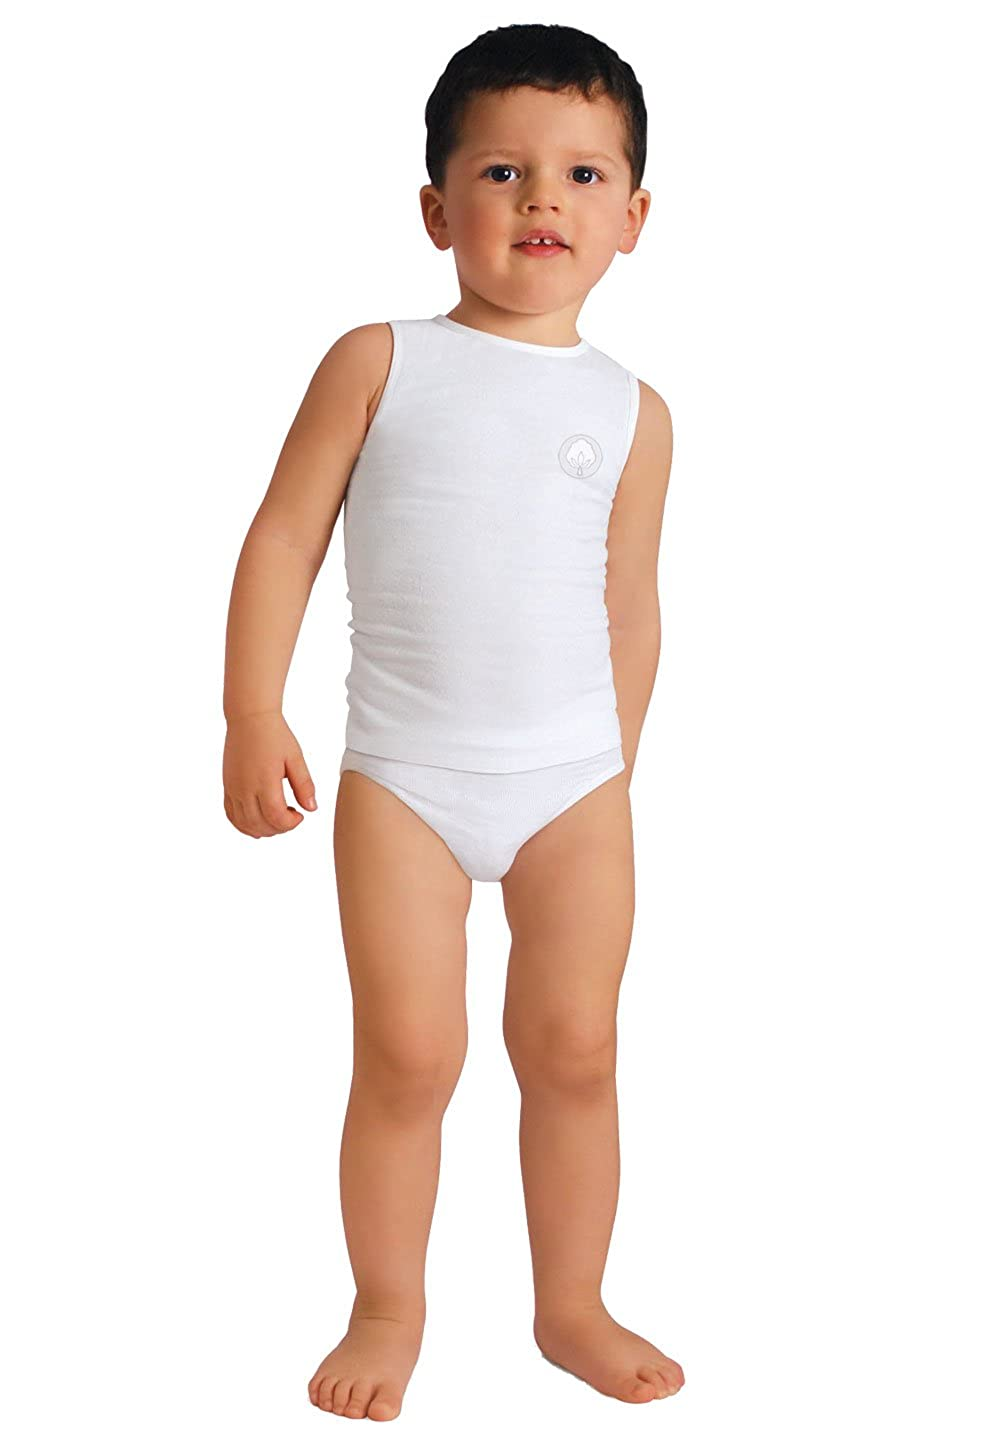 one Size 6-36 Months RelaxMaternity Baby 5940 Cotton Boys /& Girls Vest